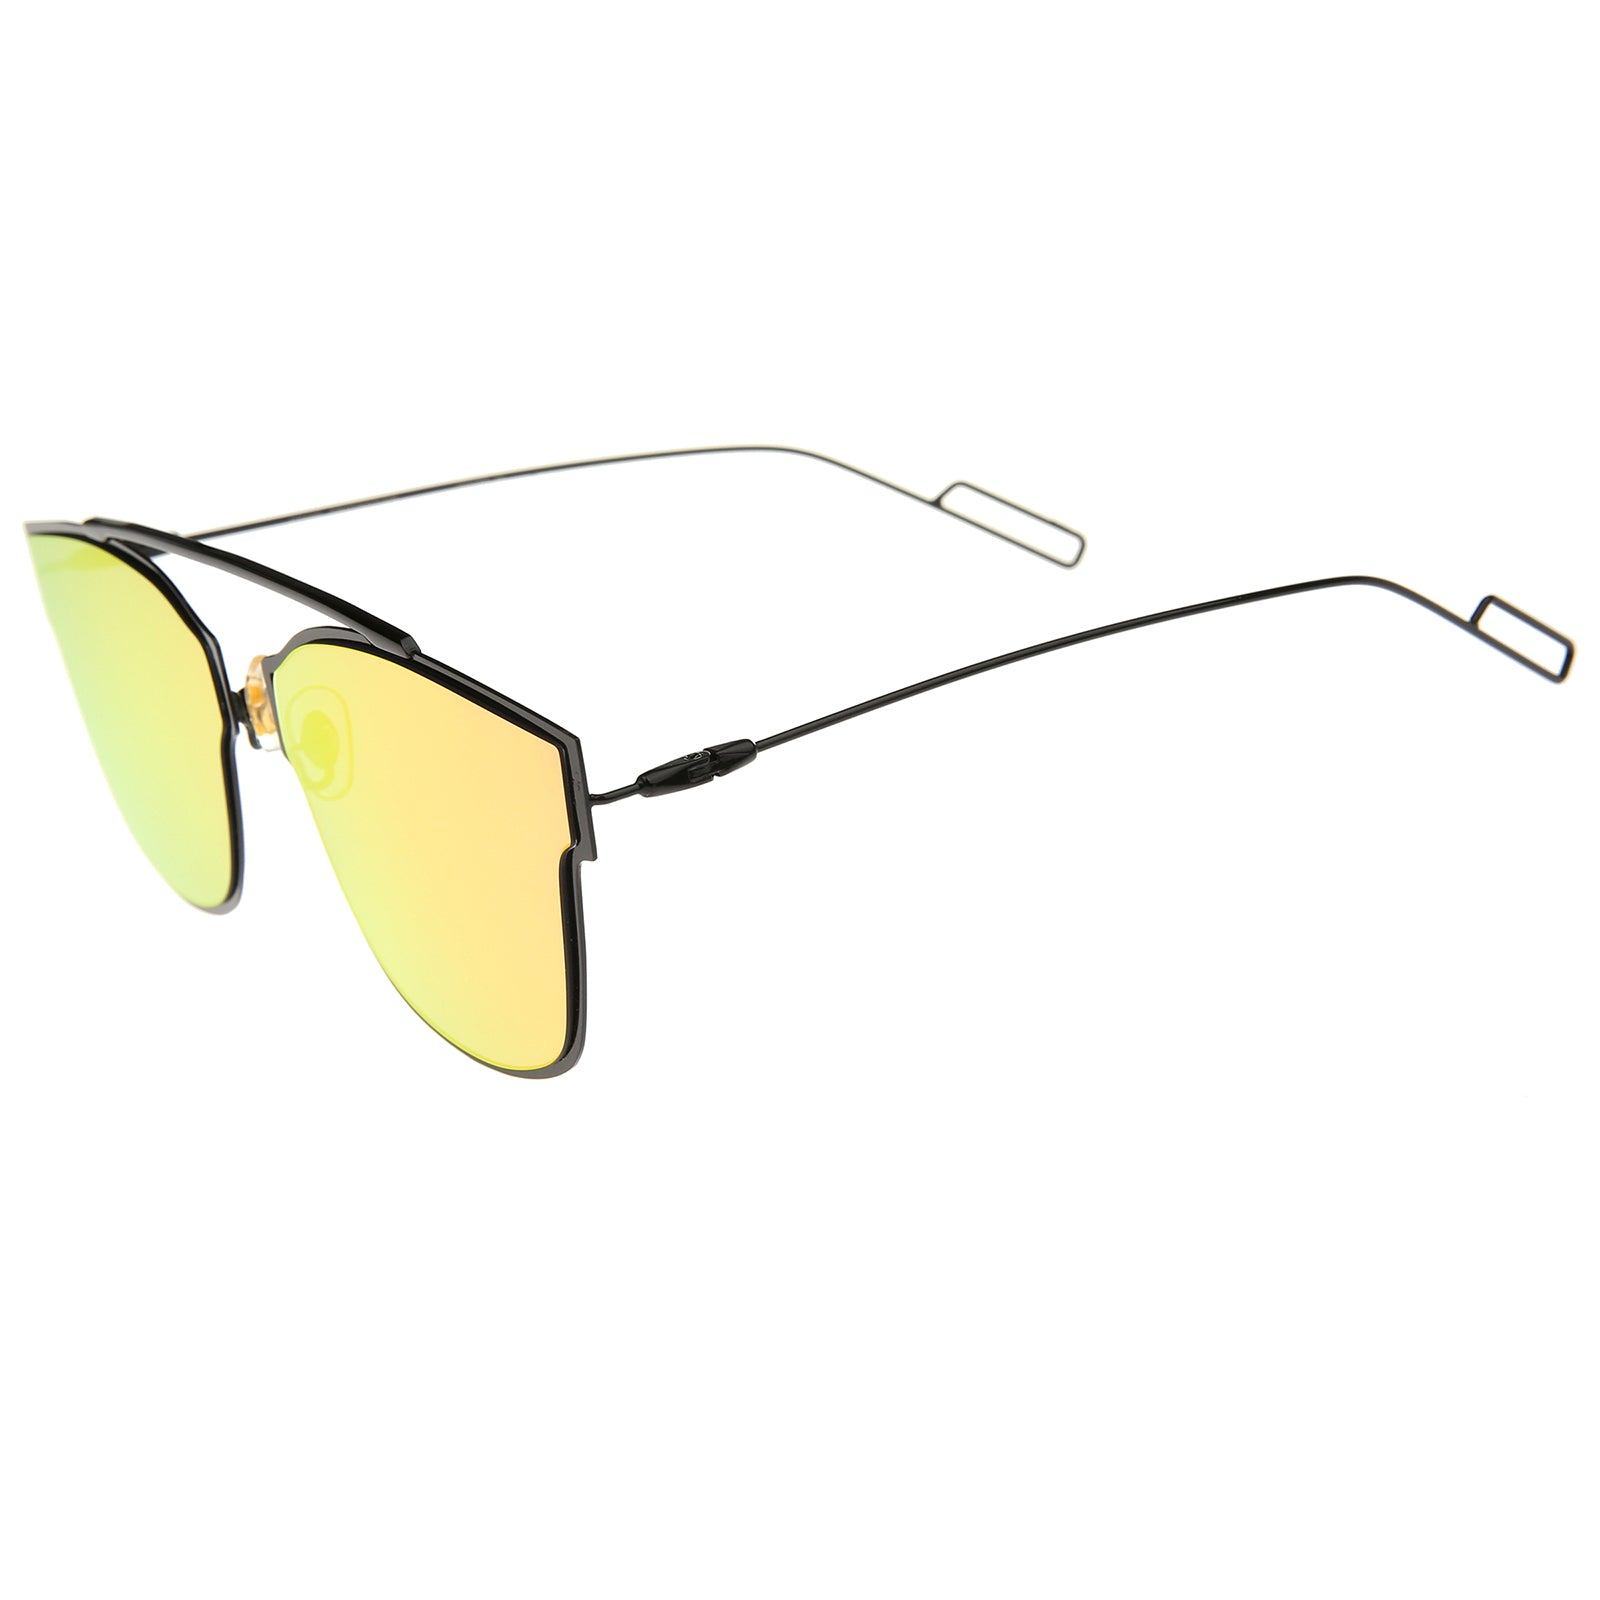 Modern Flash Mirror Lens Ultra Thin Open Metal Minimal Pantos Aviator Sunglasses 59mm - sunglass.la - 3